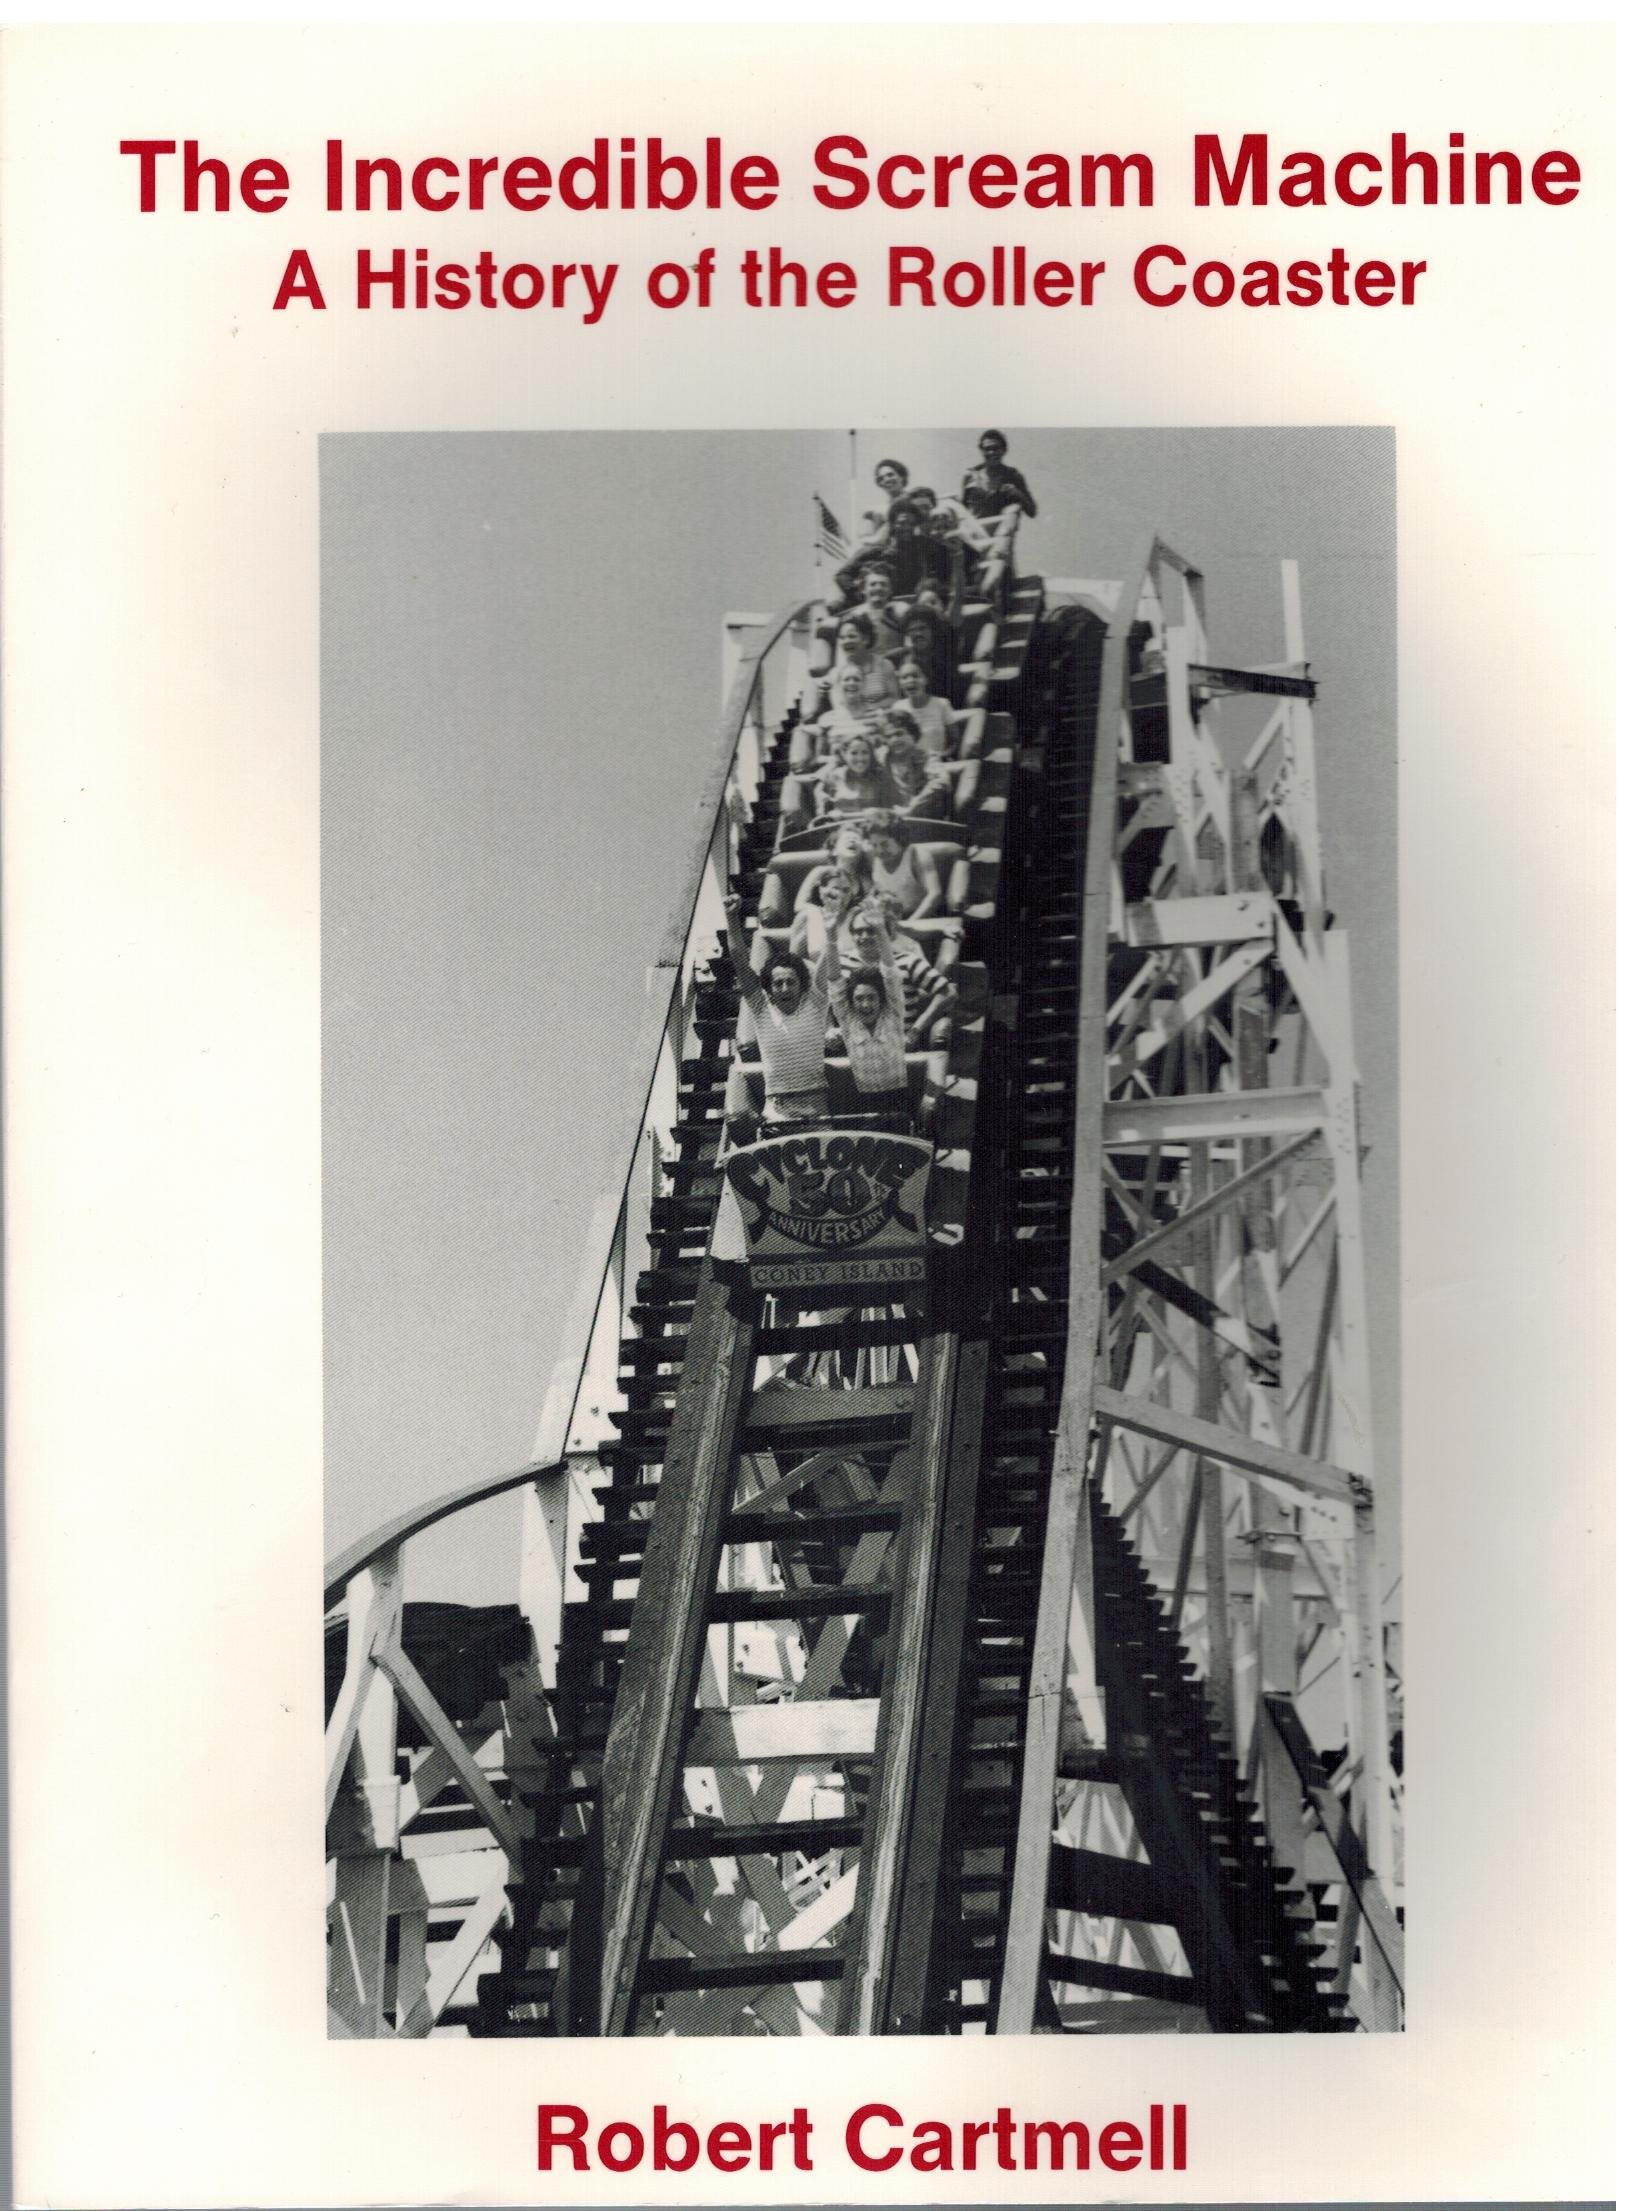 INCREDIBLE SCREAM MACHINE, THE, A History of the Roller Coaster